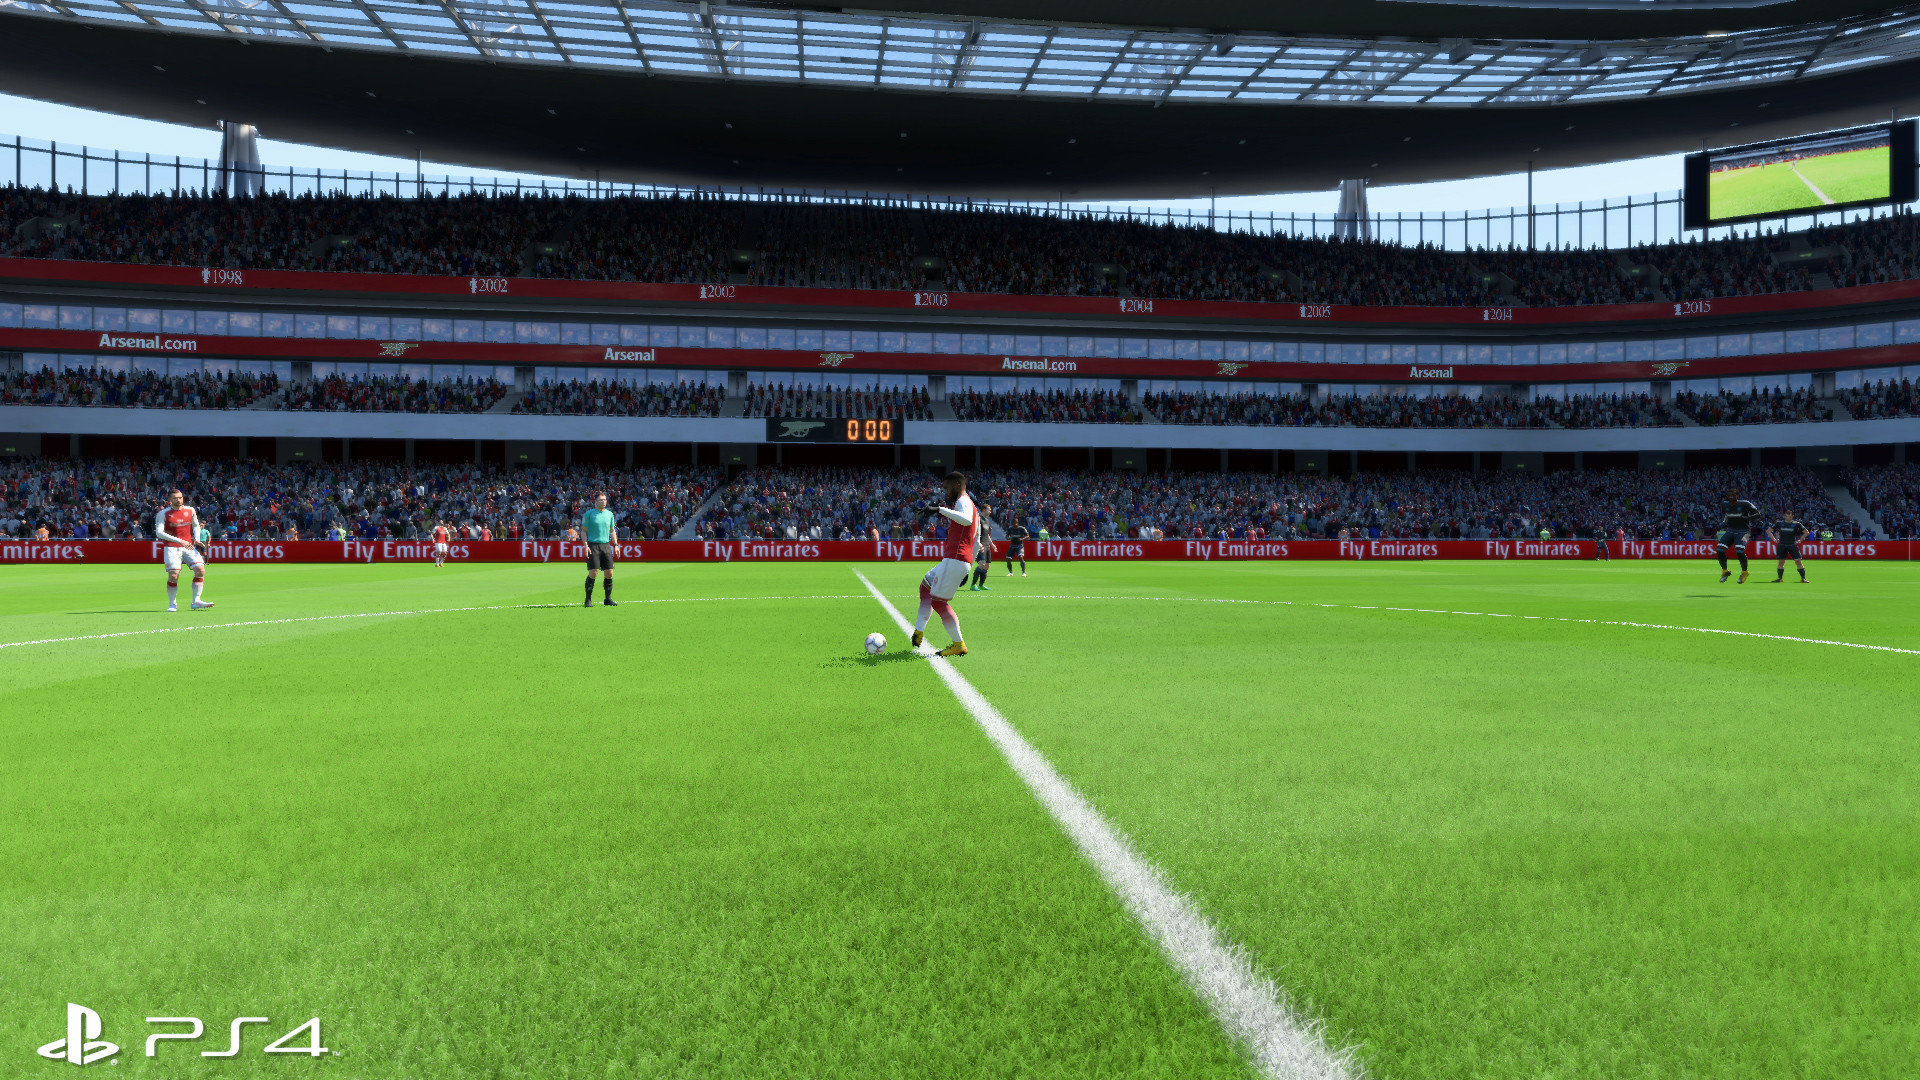 Fifa 18 On Switch Offers Healthy Boost In Tech Over Xbox 360 And Ps4 Undocked Docked Playstation 4